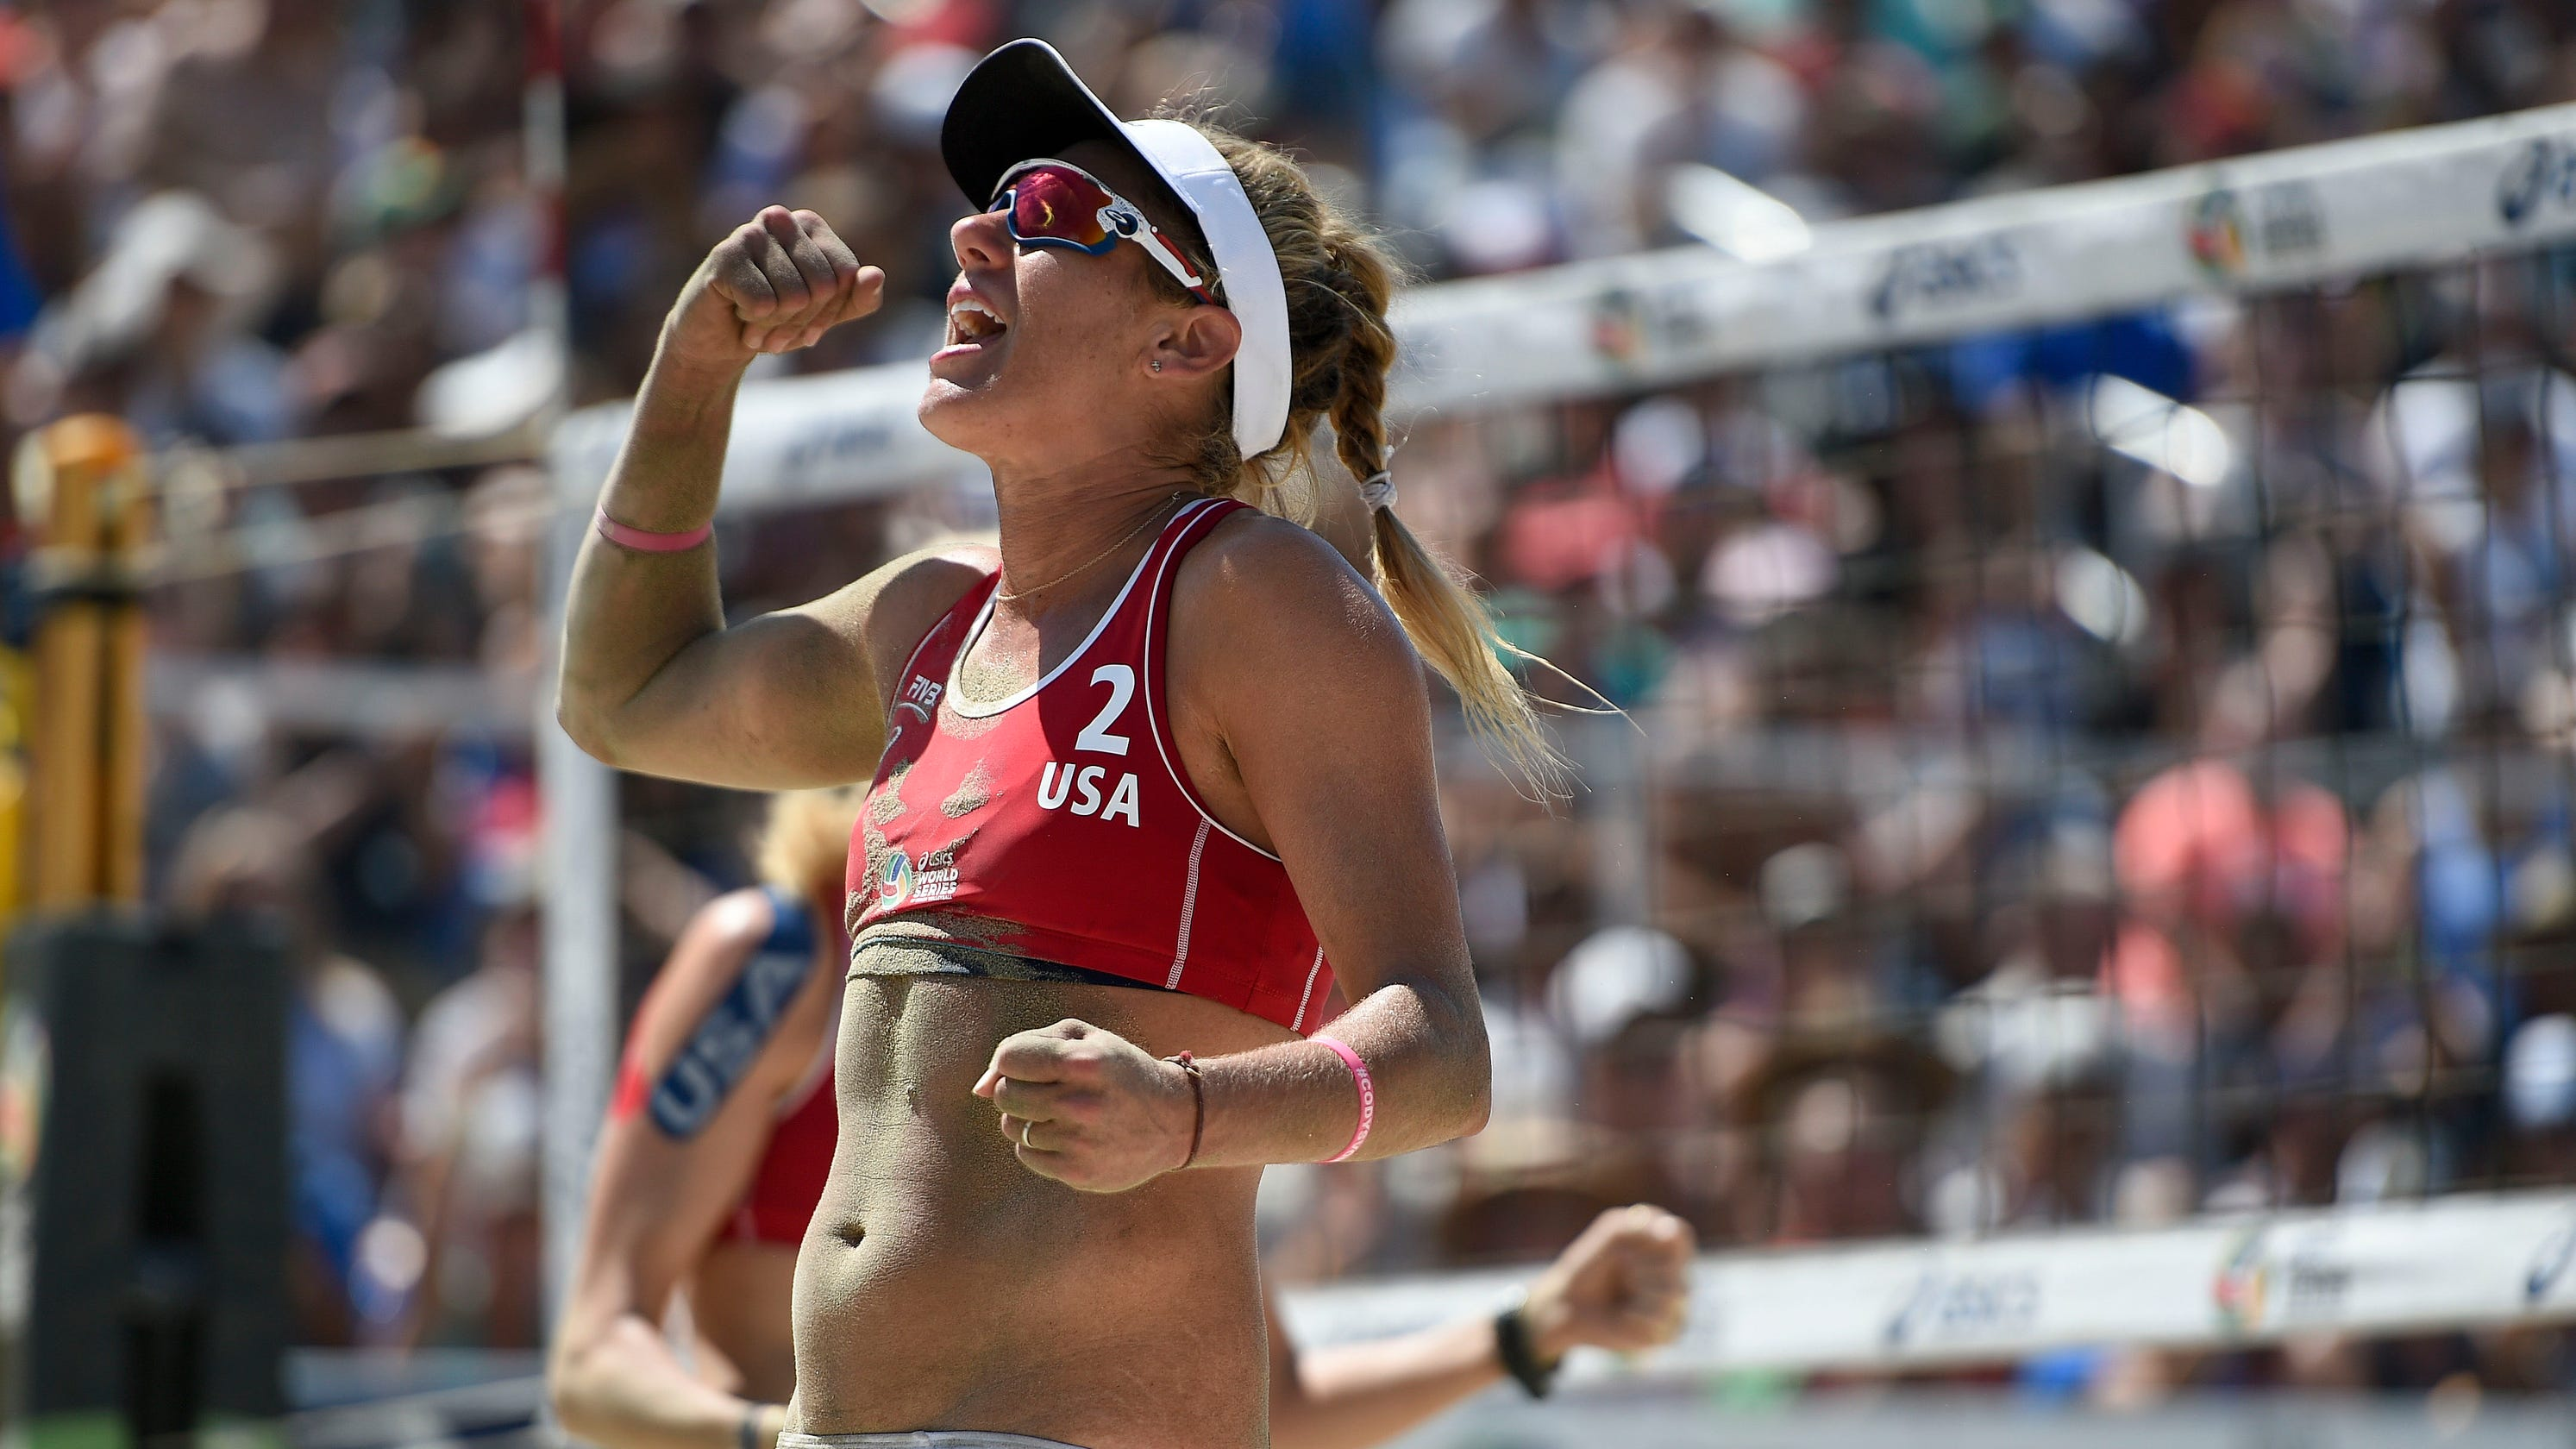 Beach volleyball star April Ross draws strength from mother's cancer battle in quest for Olympic gold